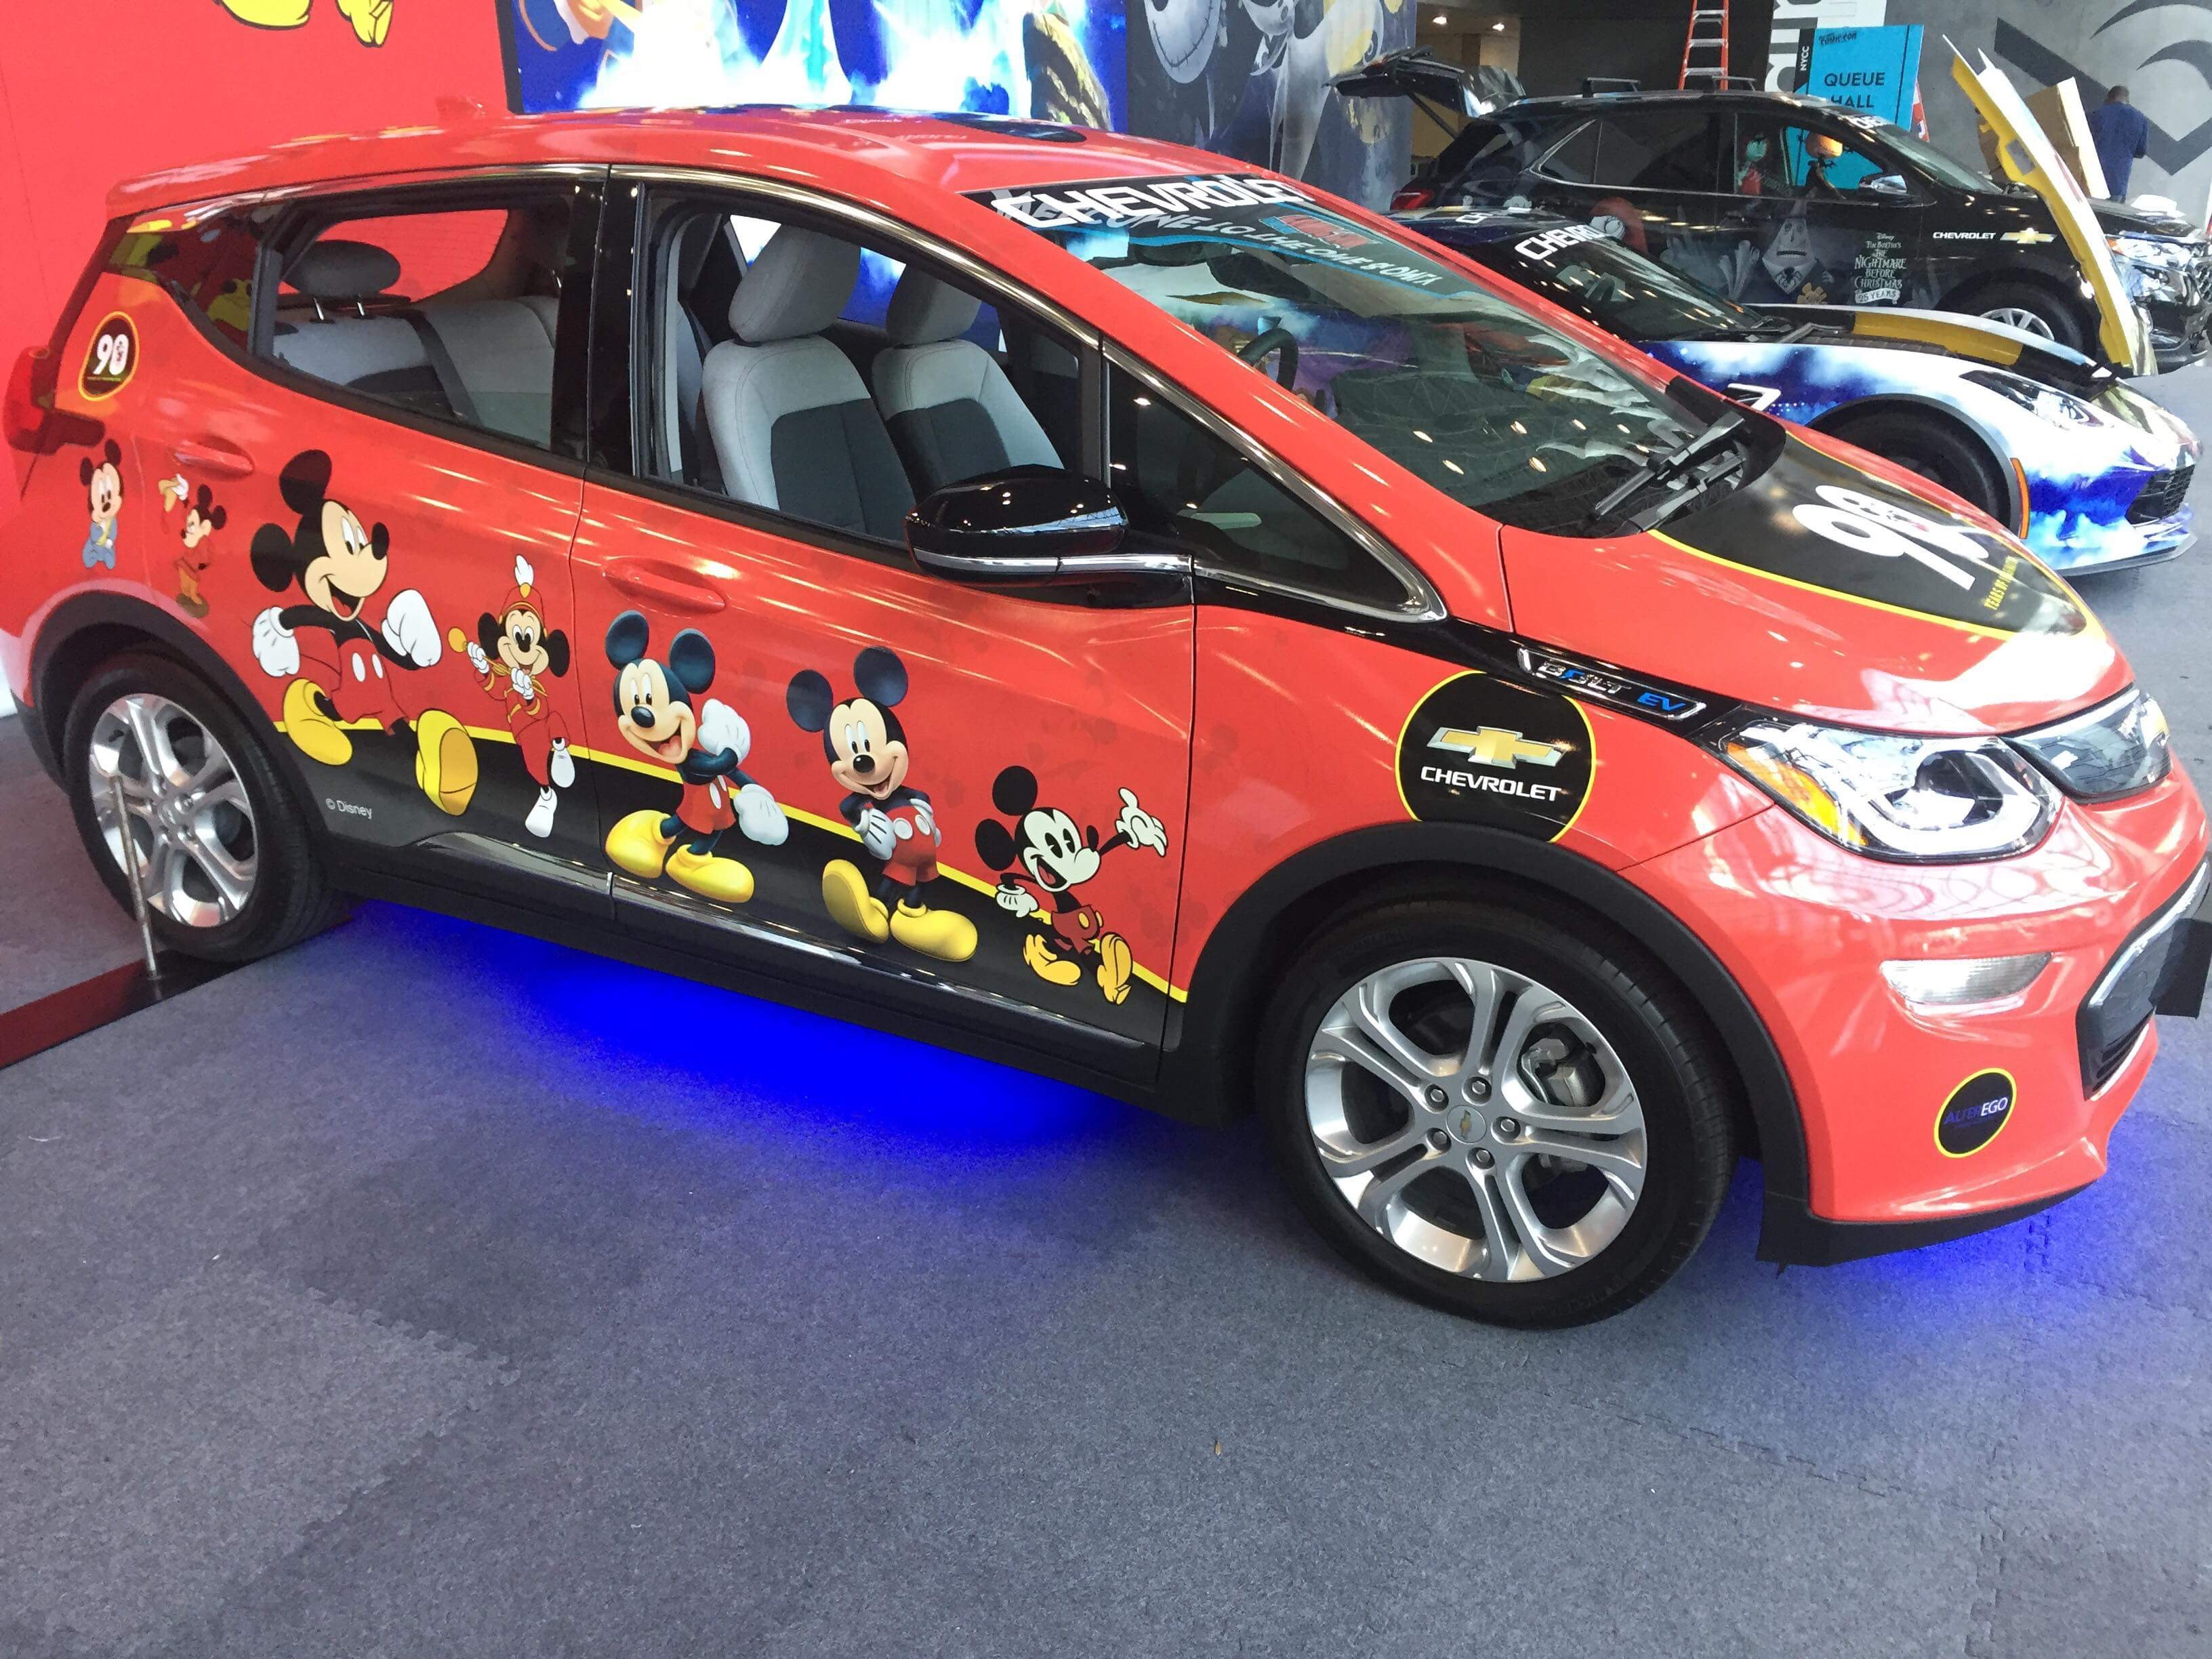 Disney Themed Chevrolet Cars On Display At NYCC